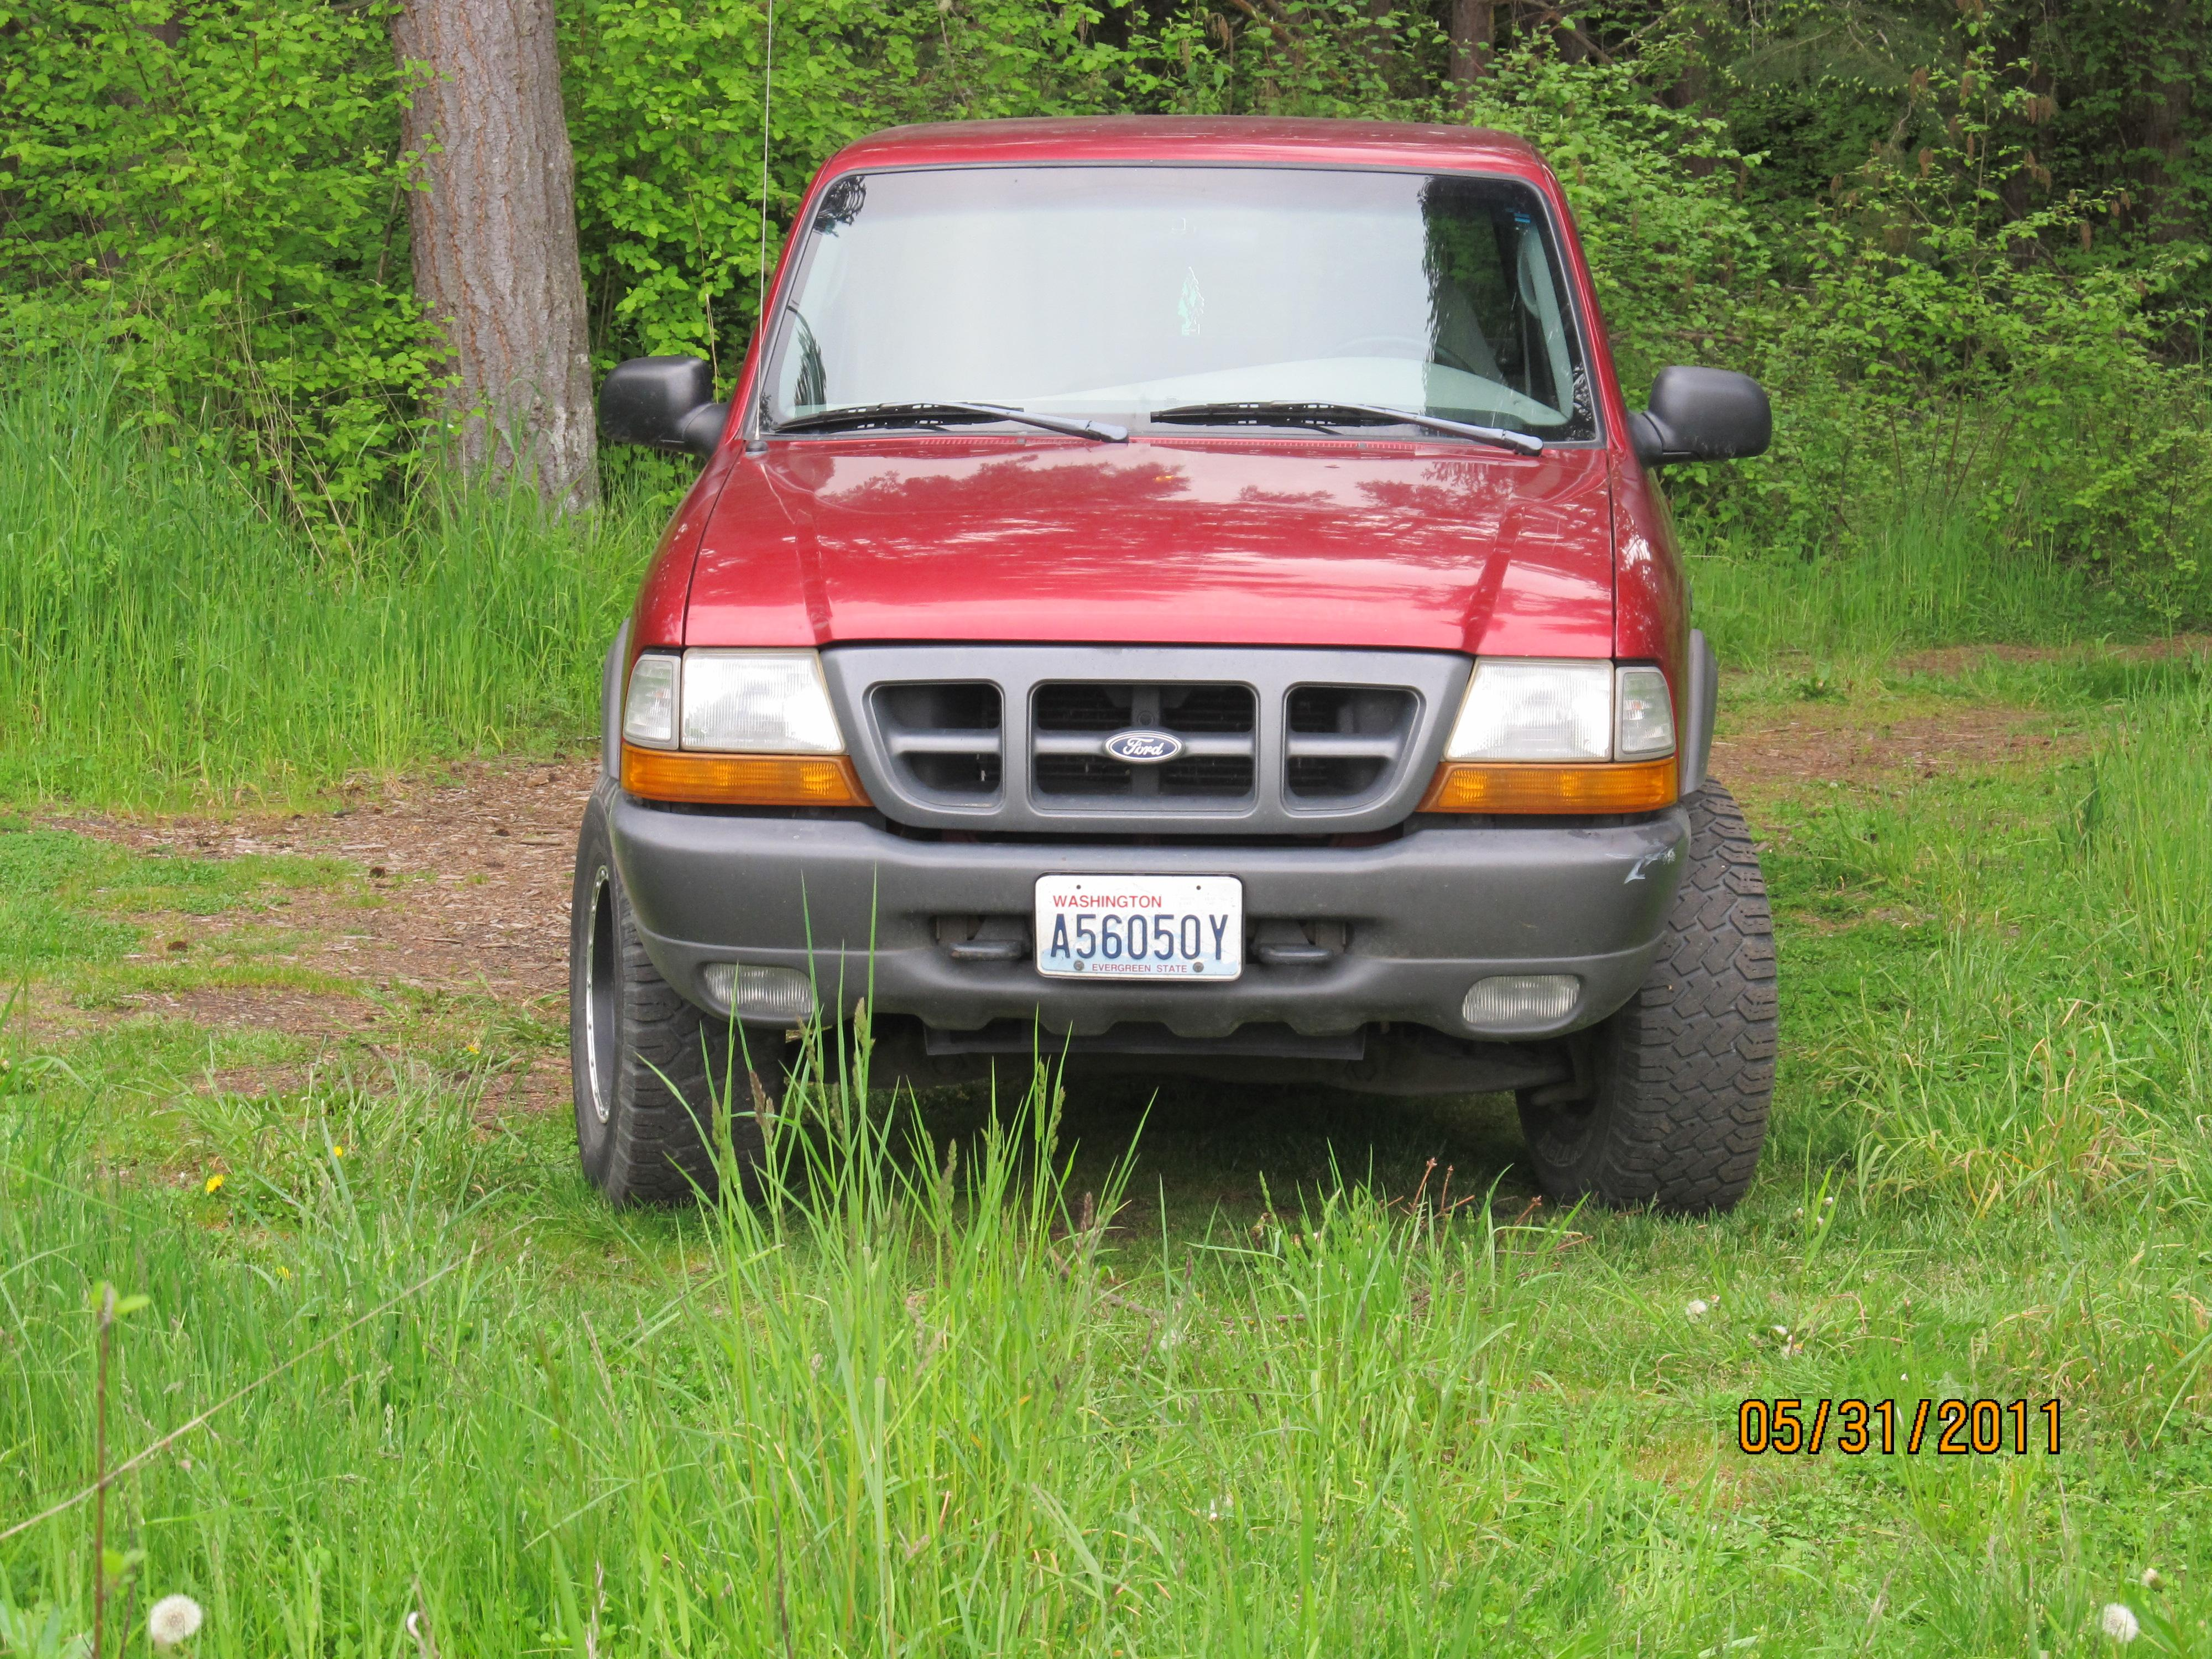 Dbrew84's 1998 Ford Ranger Super Cab